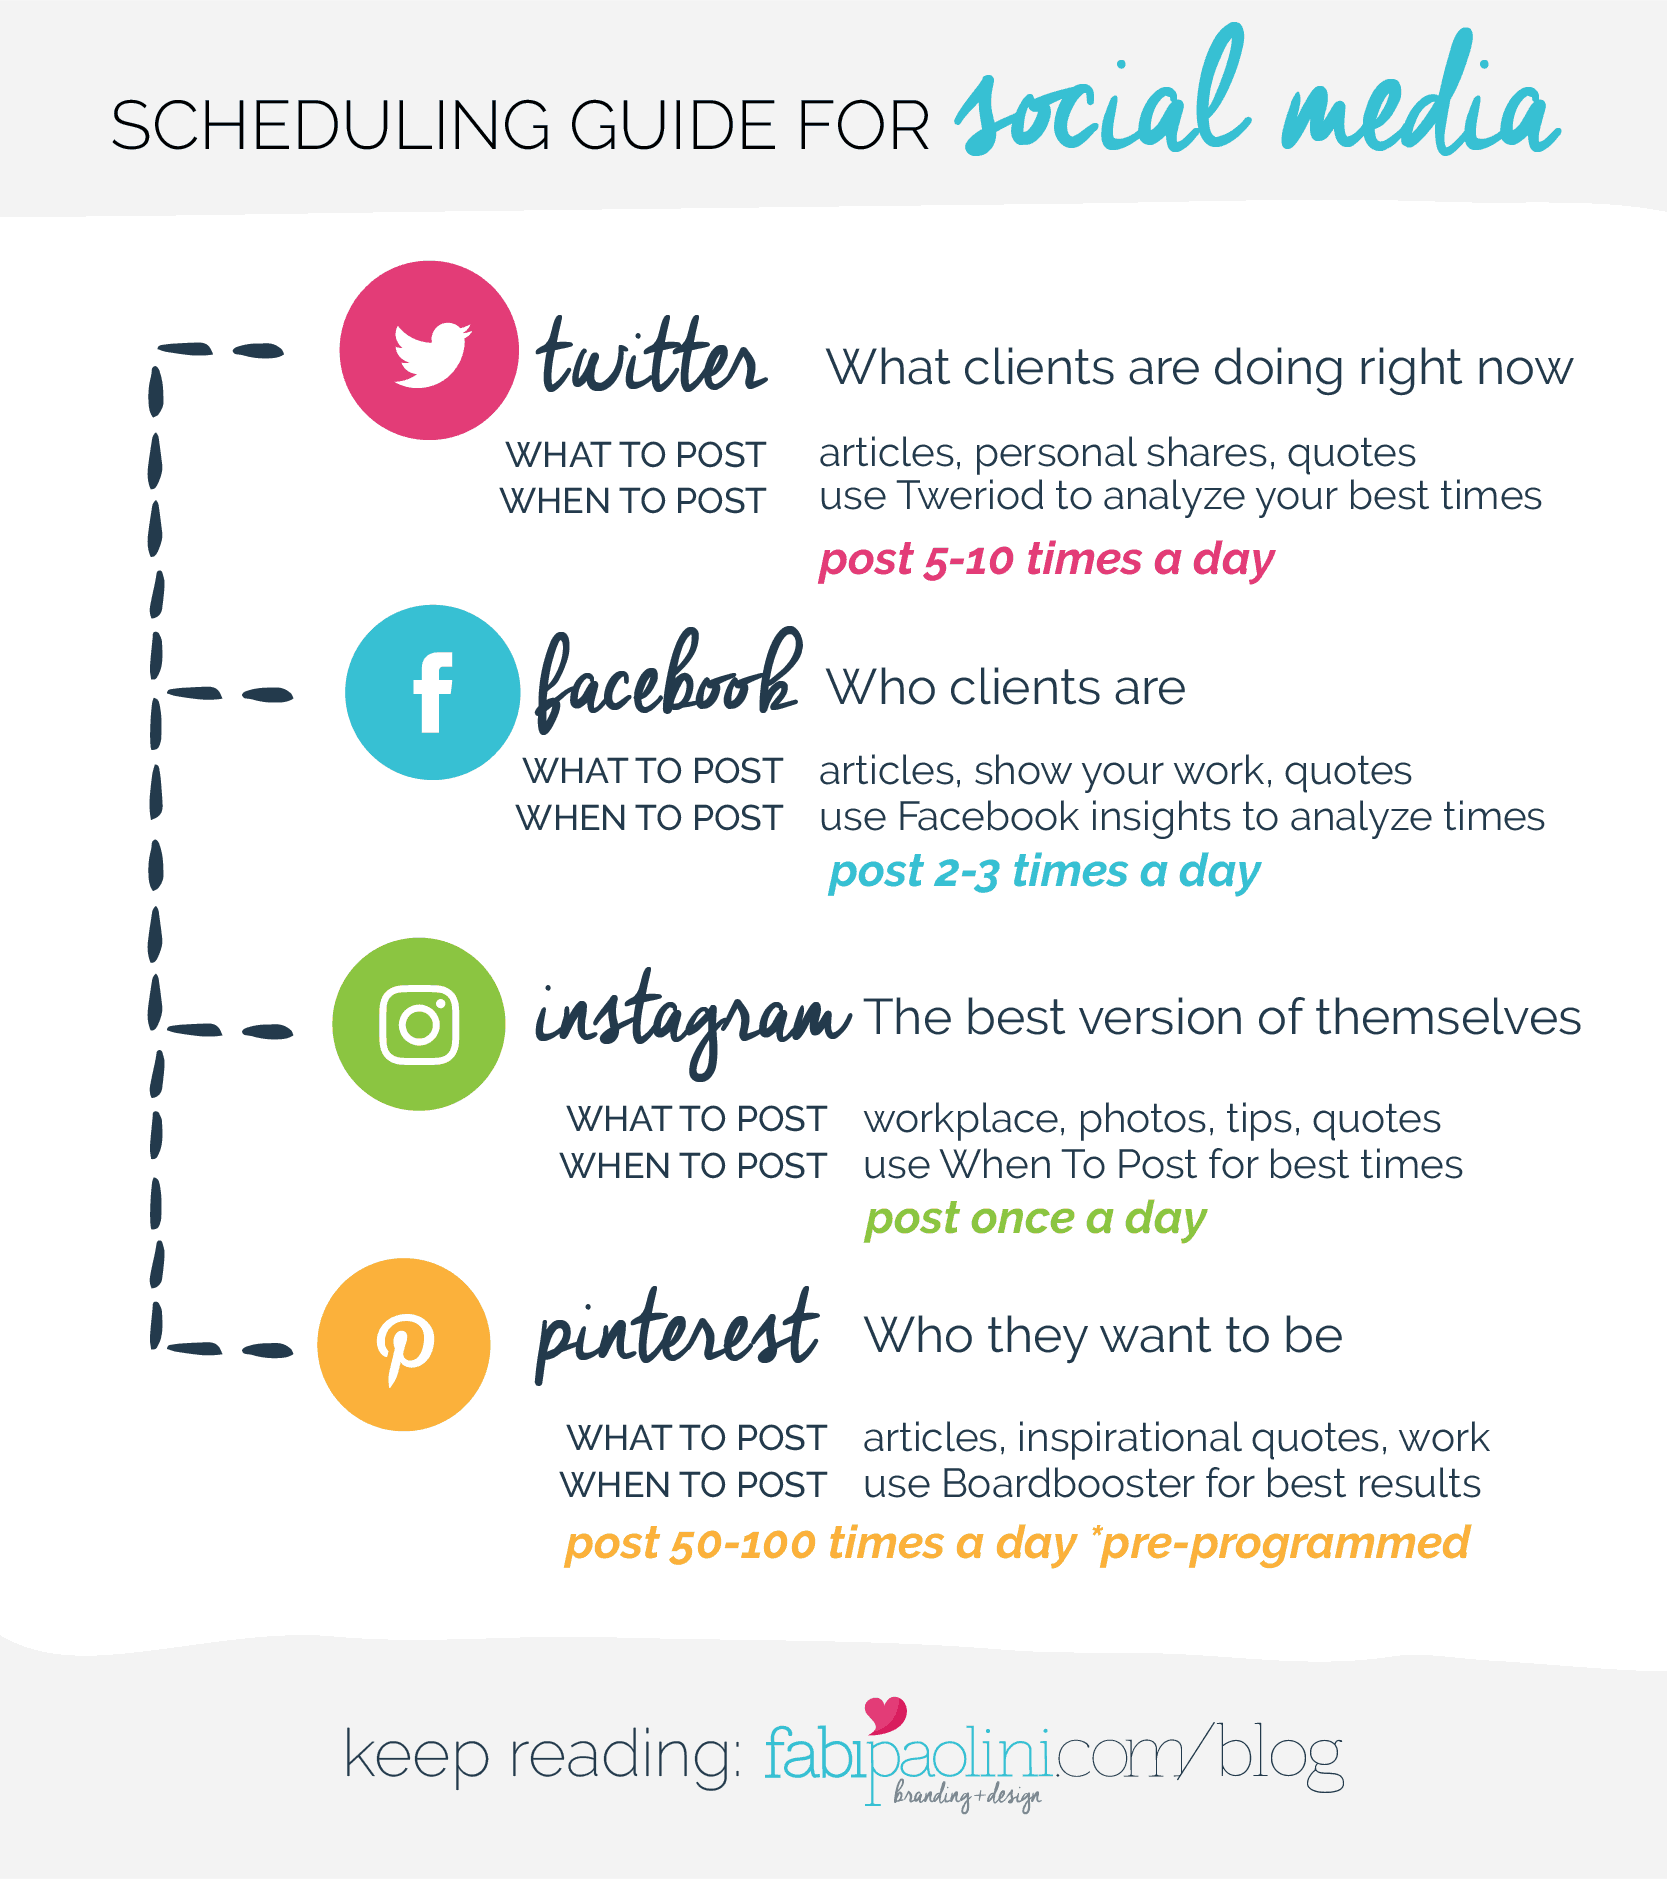 A social media scheduling guide to build your brand online. Check out the rest!